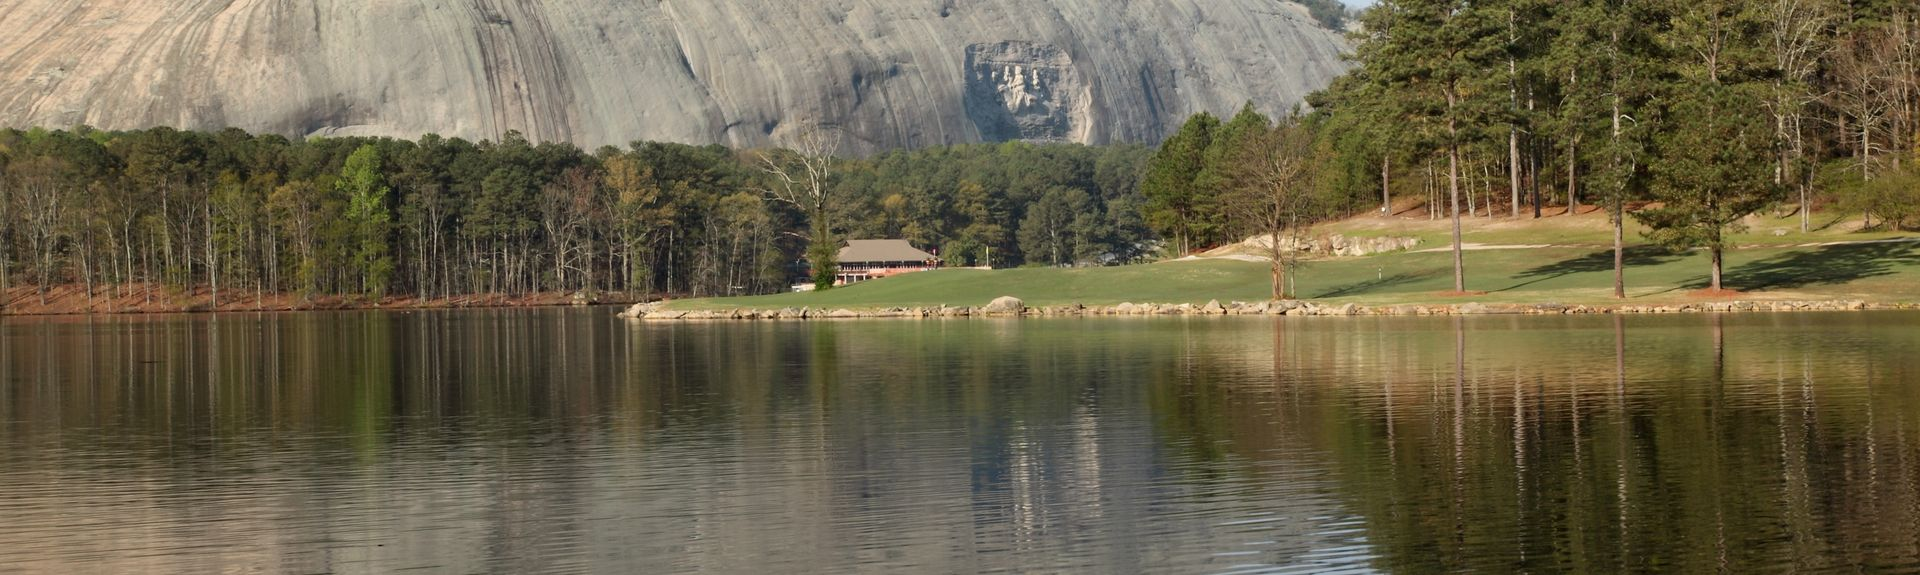 Stone Mountain State Park, Carolina do Norte, Estados Unidos